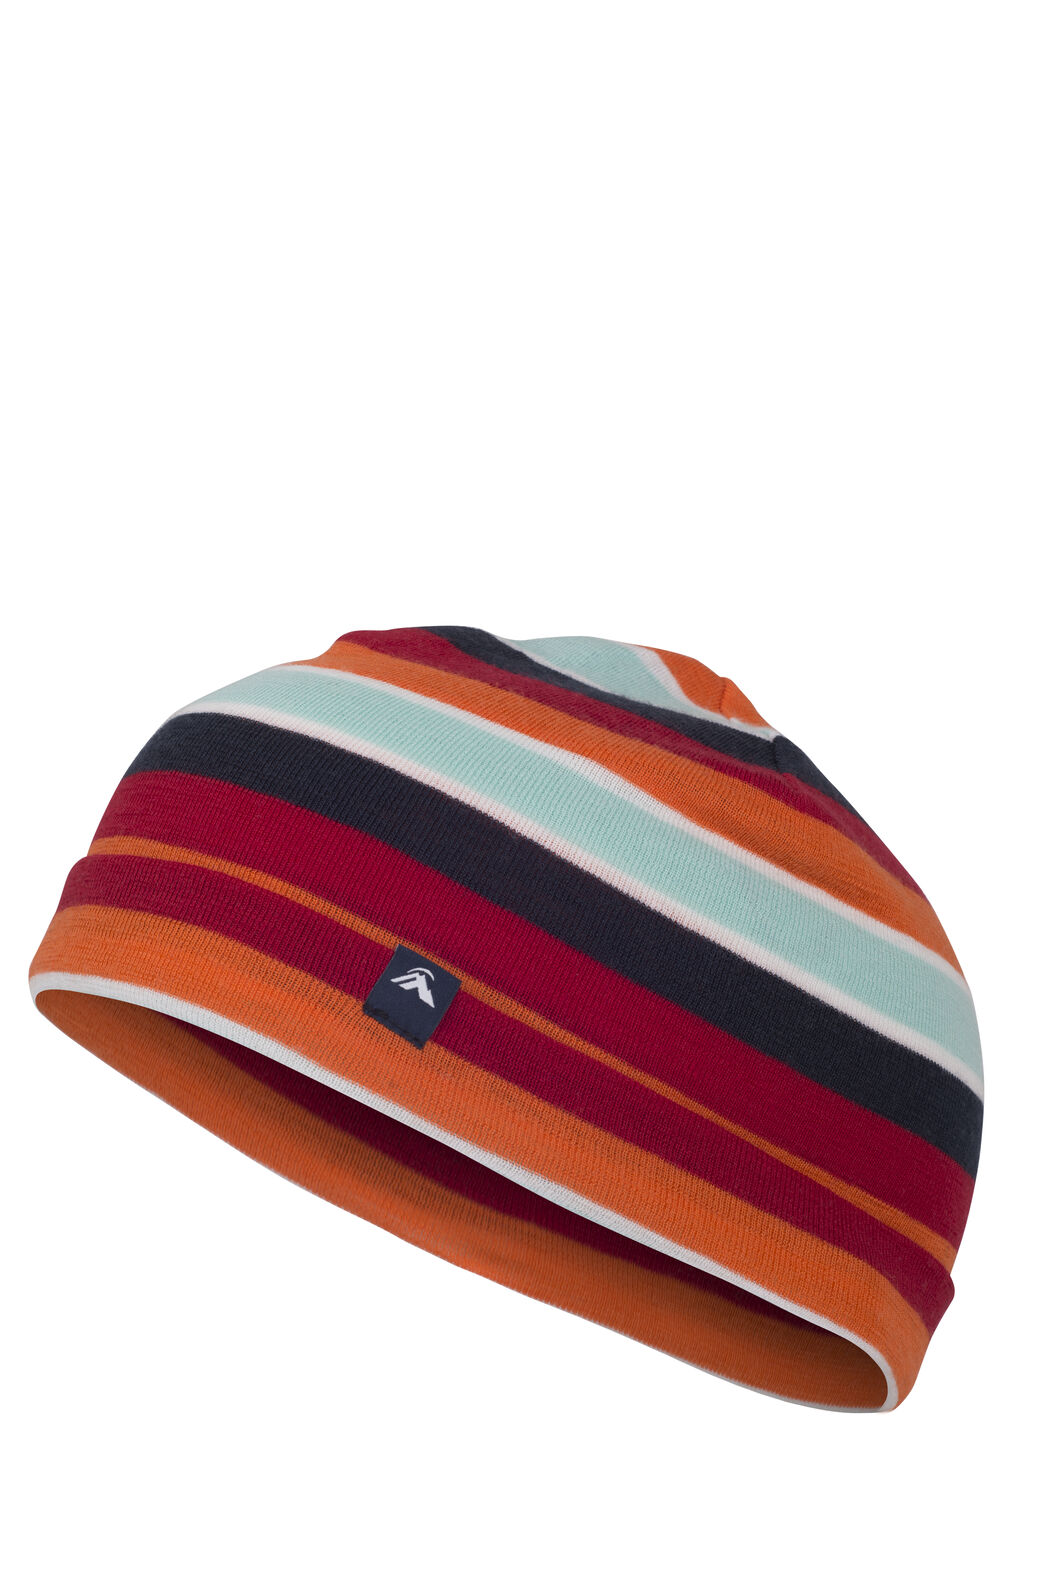 Macpac Merino 220 Beanie Kids', Orange Stripe, hi-res